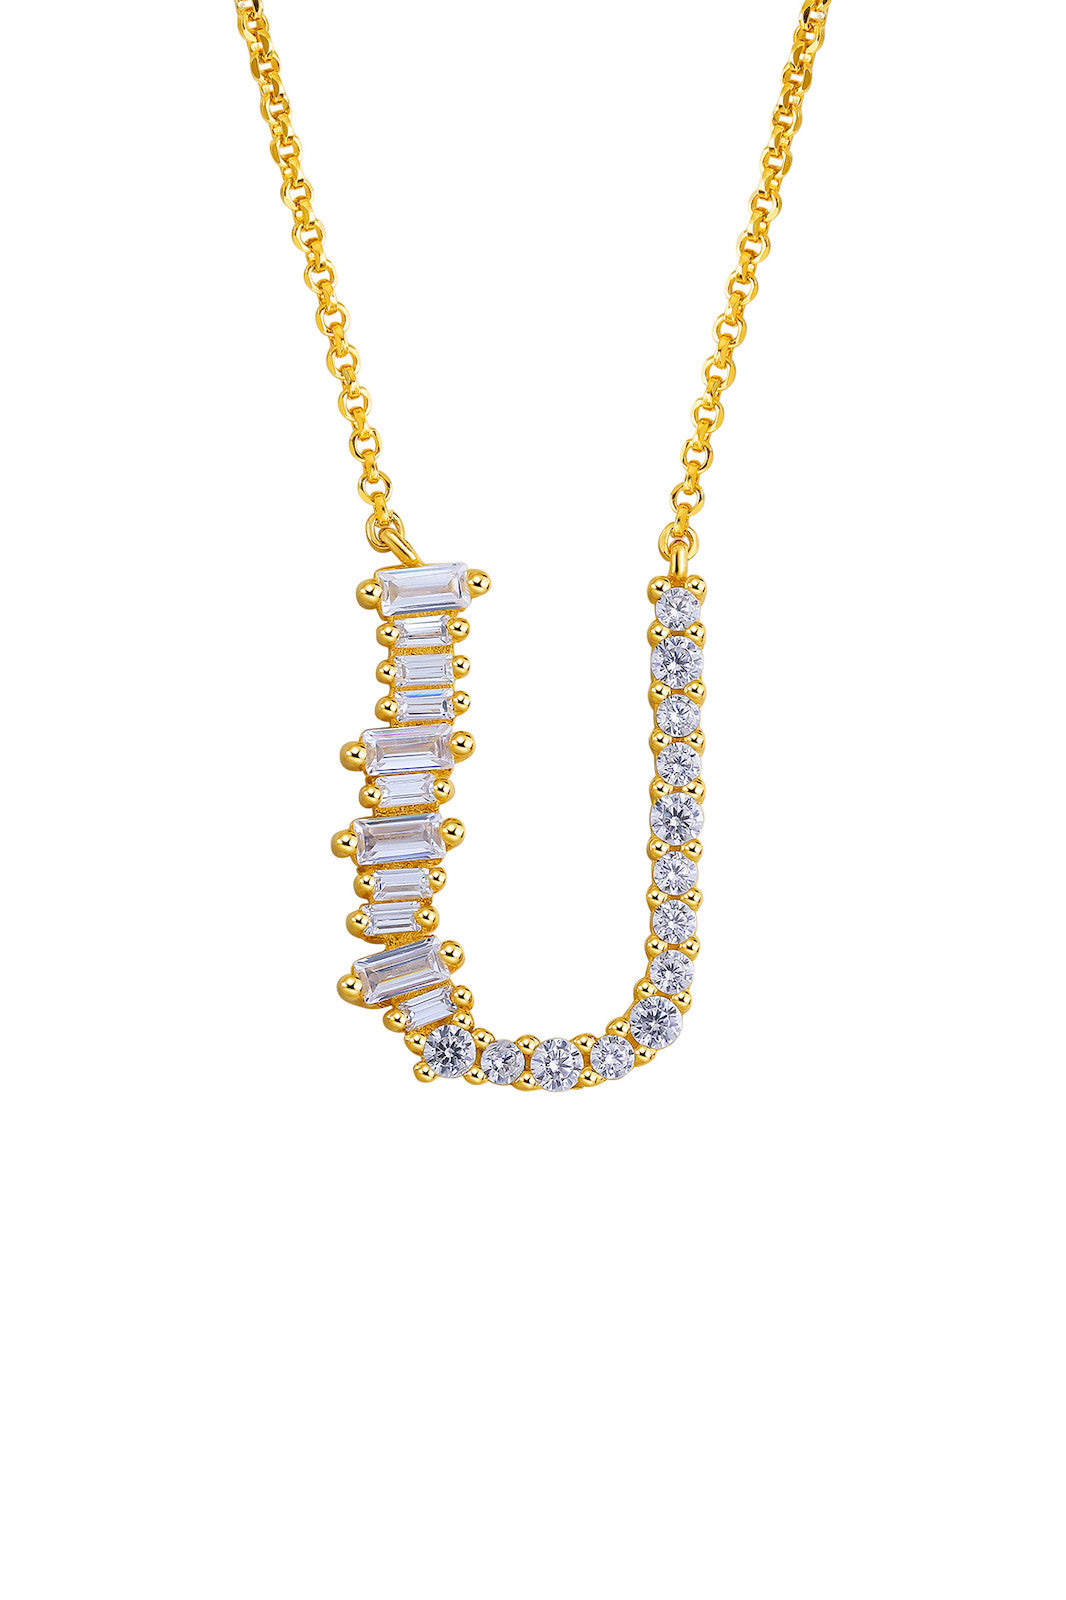 Gold Plated Sterling Silver Initial Necklace - Letter U Detail